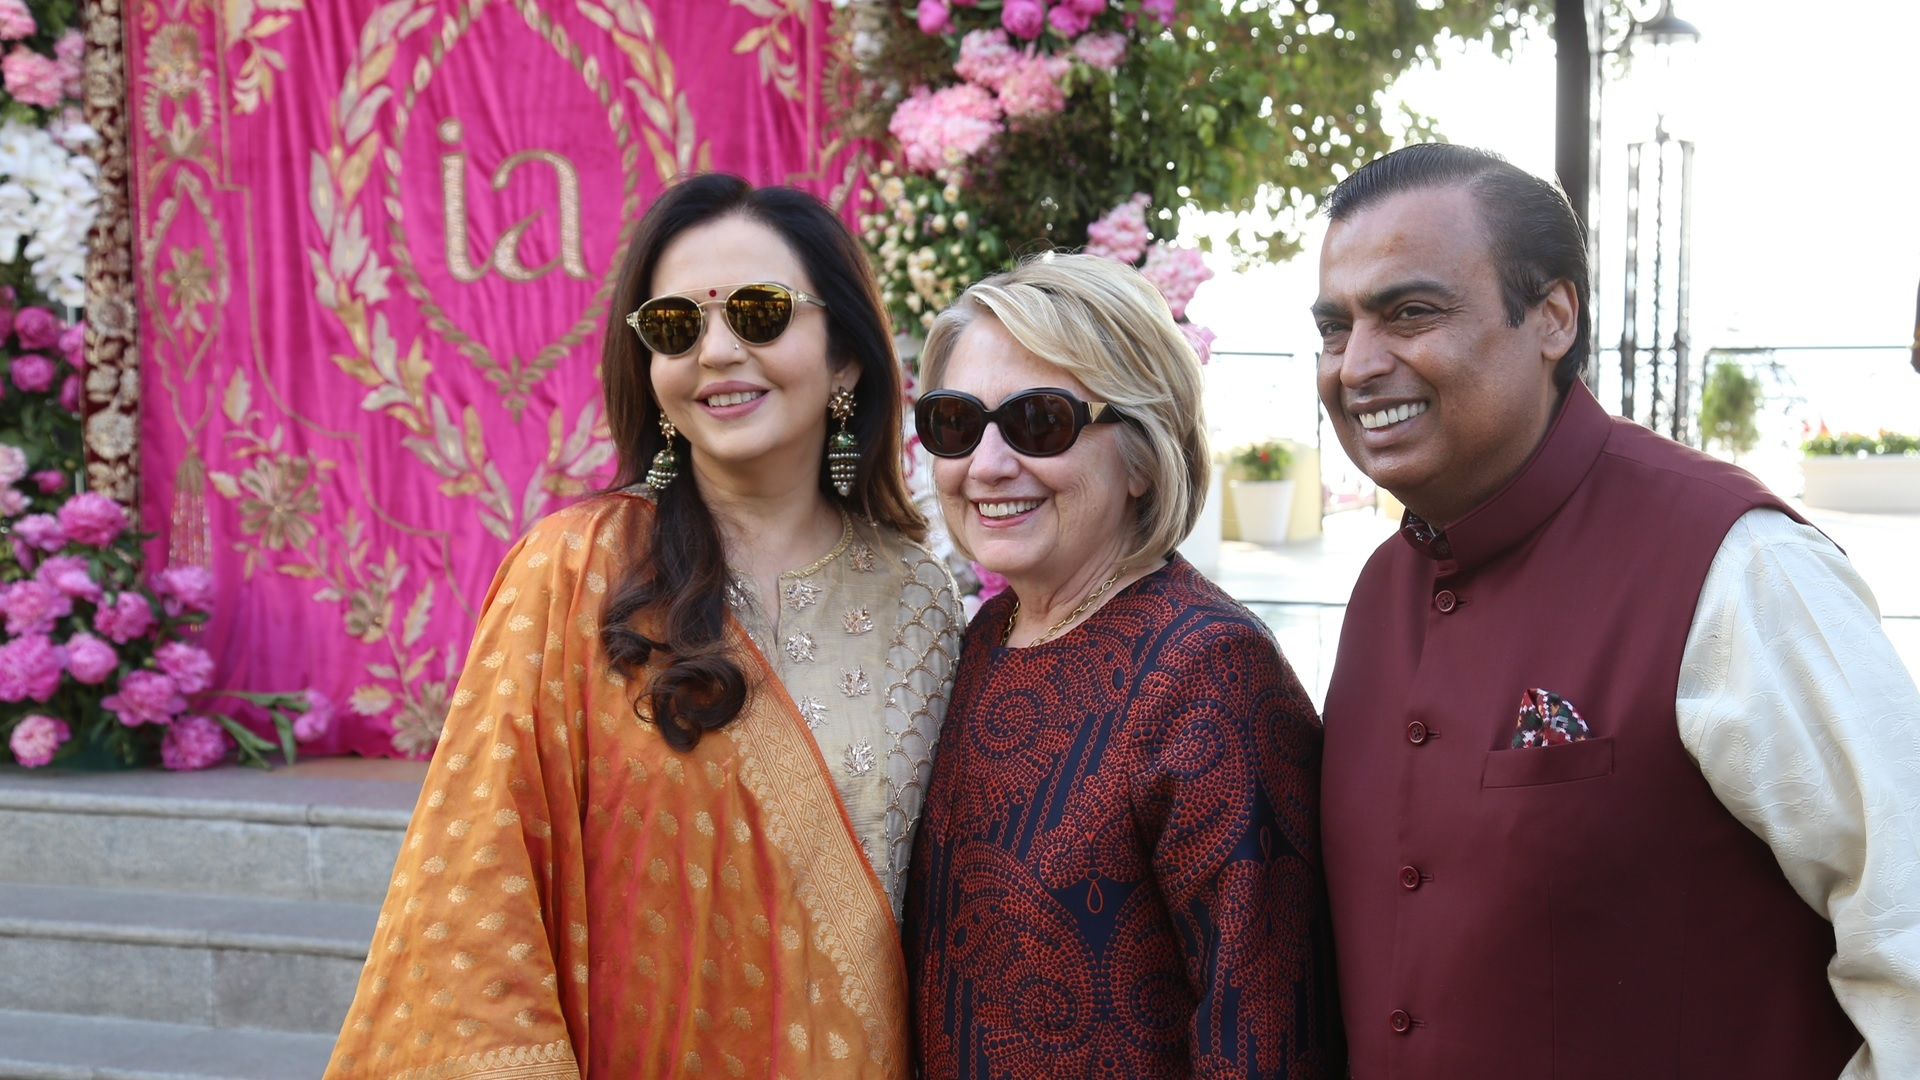 Nita Ambani and Mukesh Ambani with Hilary Clinton at the pre-wedding rituals of Isha Ambani and Anand Piramal in Udaipur